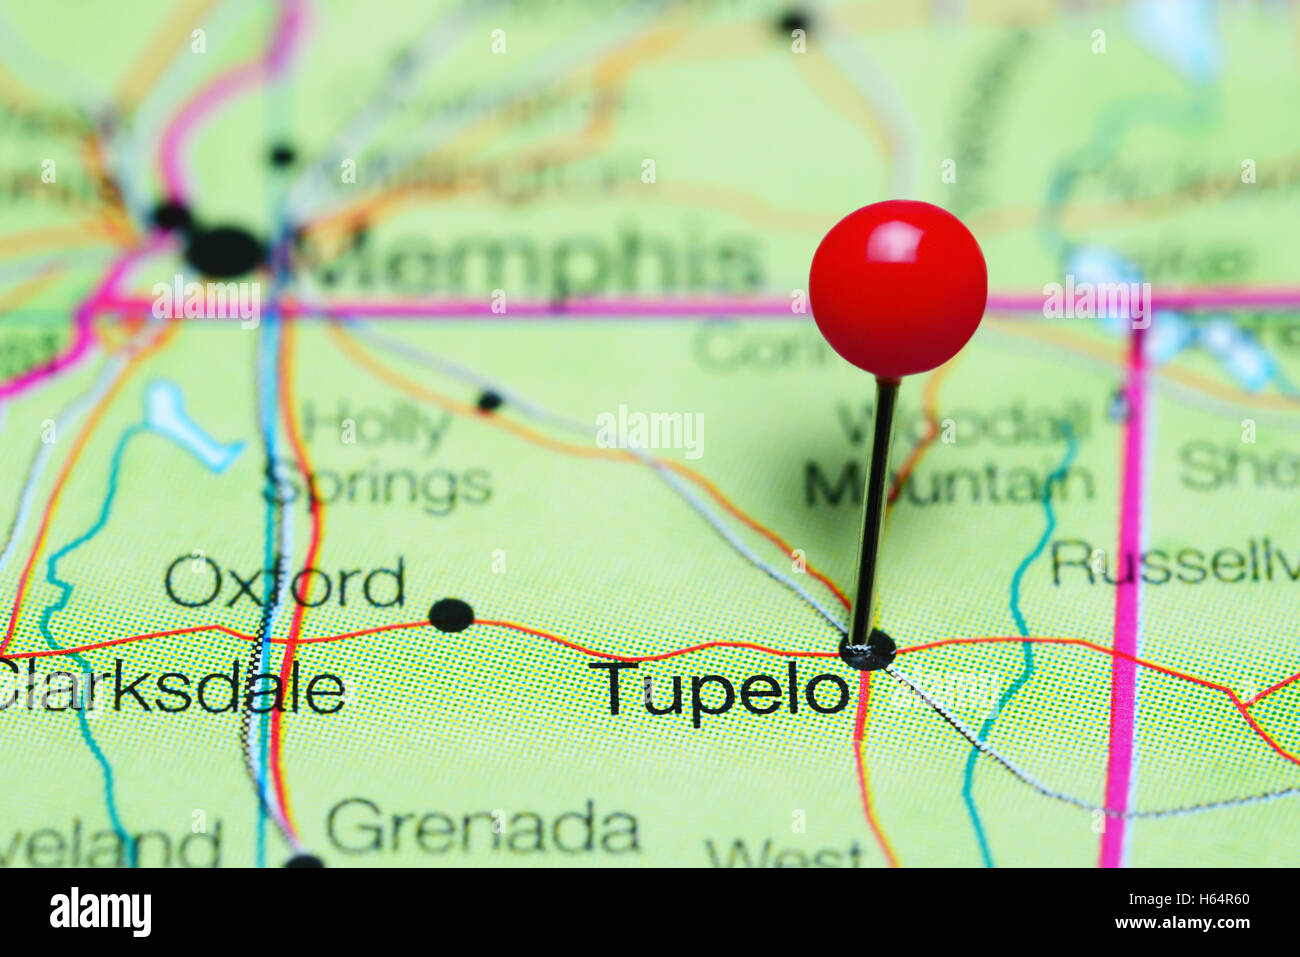 Tupelo pinned on a map of Mississippi, USA - Stock Image